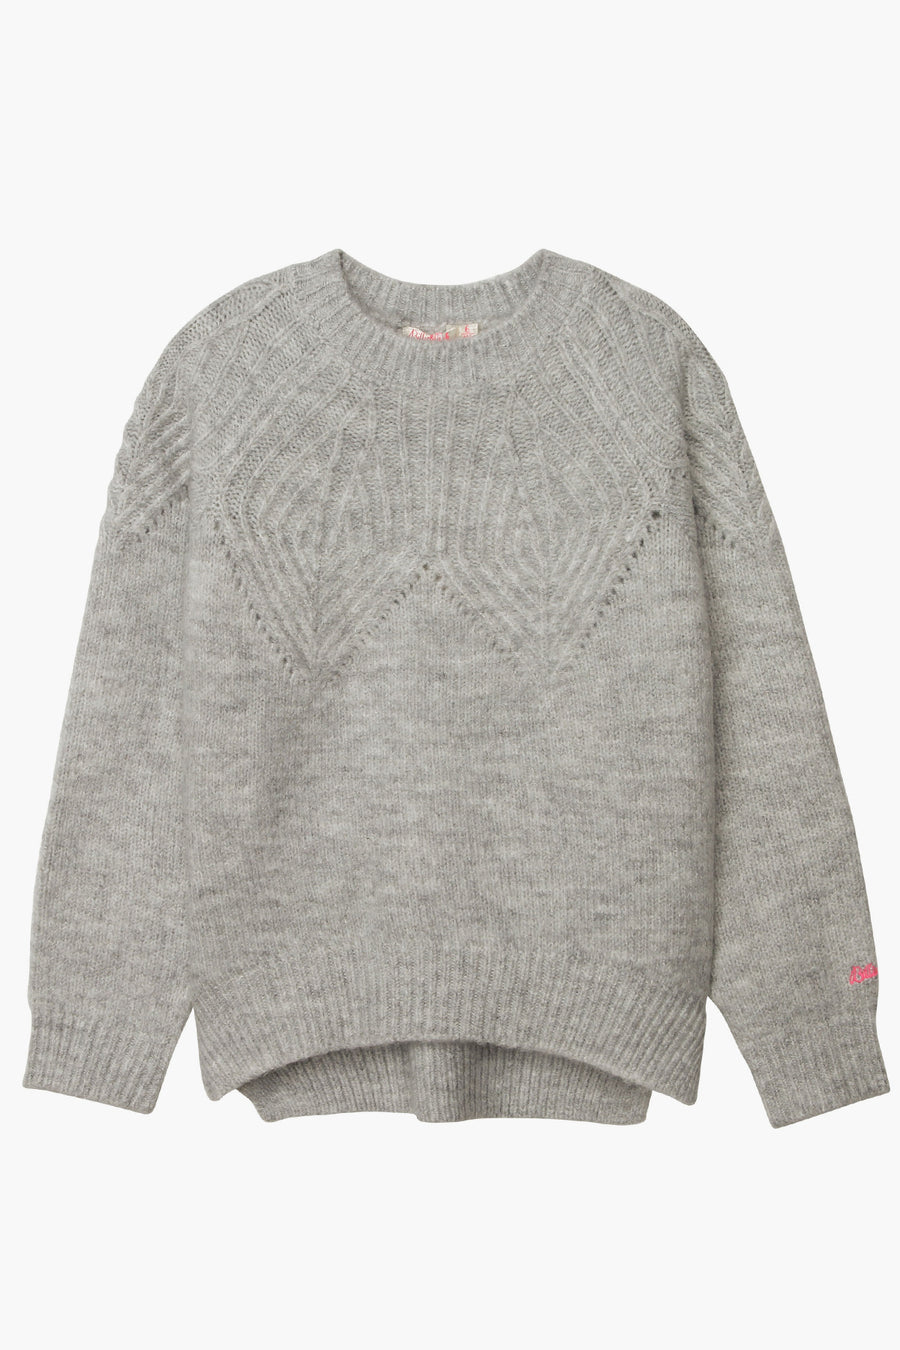 Billieblush Eyelet Knit Girls Sweater